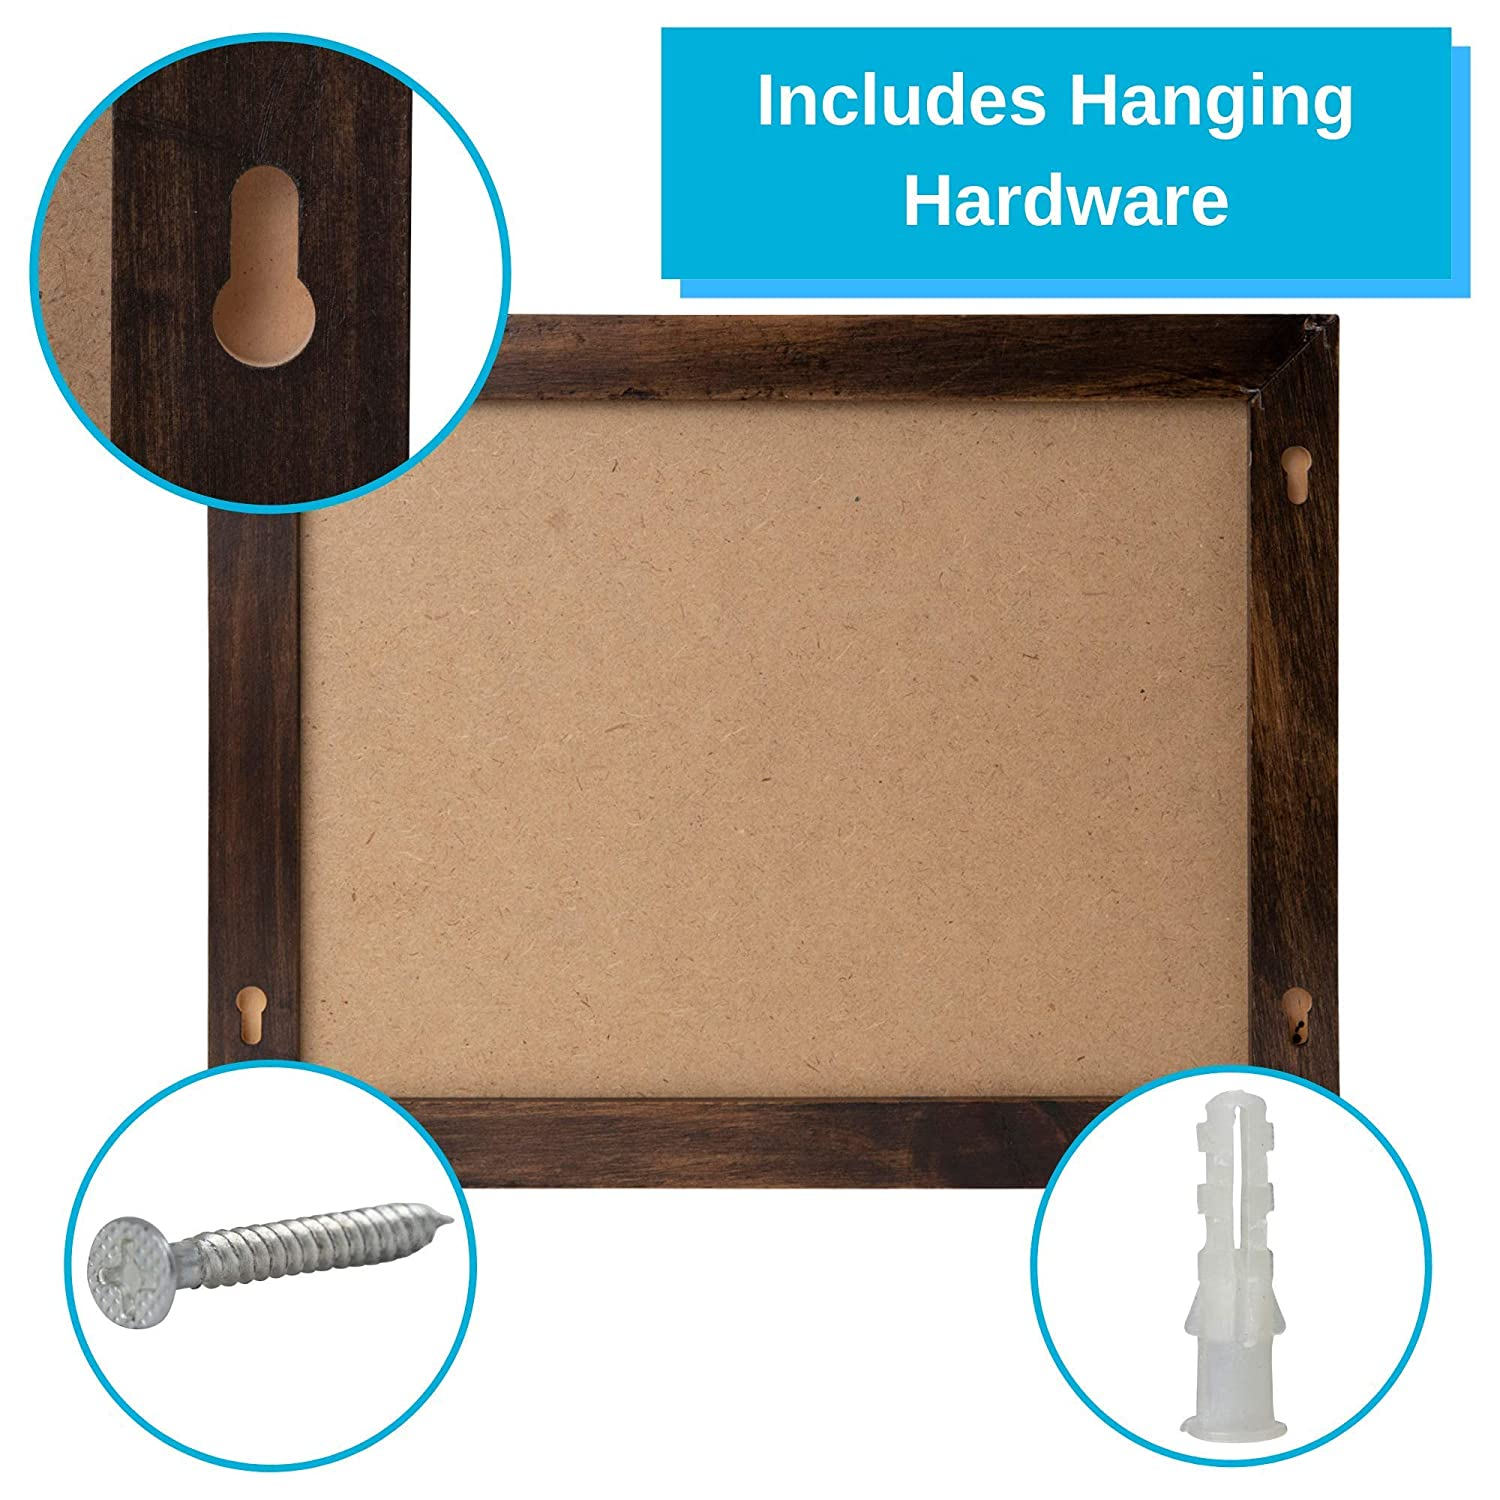 Wall Mount Slate Memos Menu Board Wooden Frame Classroom Kitchen For Office Hanging Blackboard 11 X 14 Mini Magnetic Sign Houseables Rustic Chalkboard Goal Tracking Decorative Bulletin Presentation Boards Office Products Rayvoltbike Com